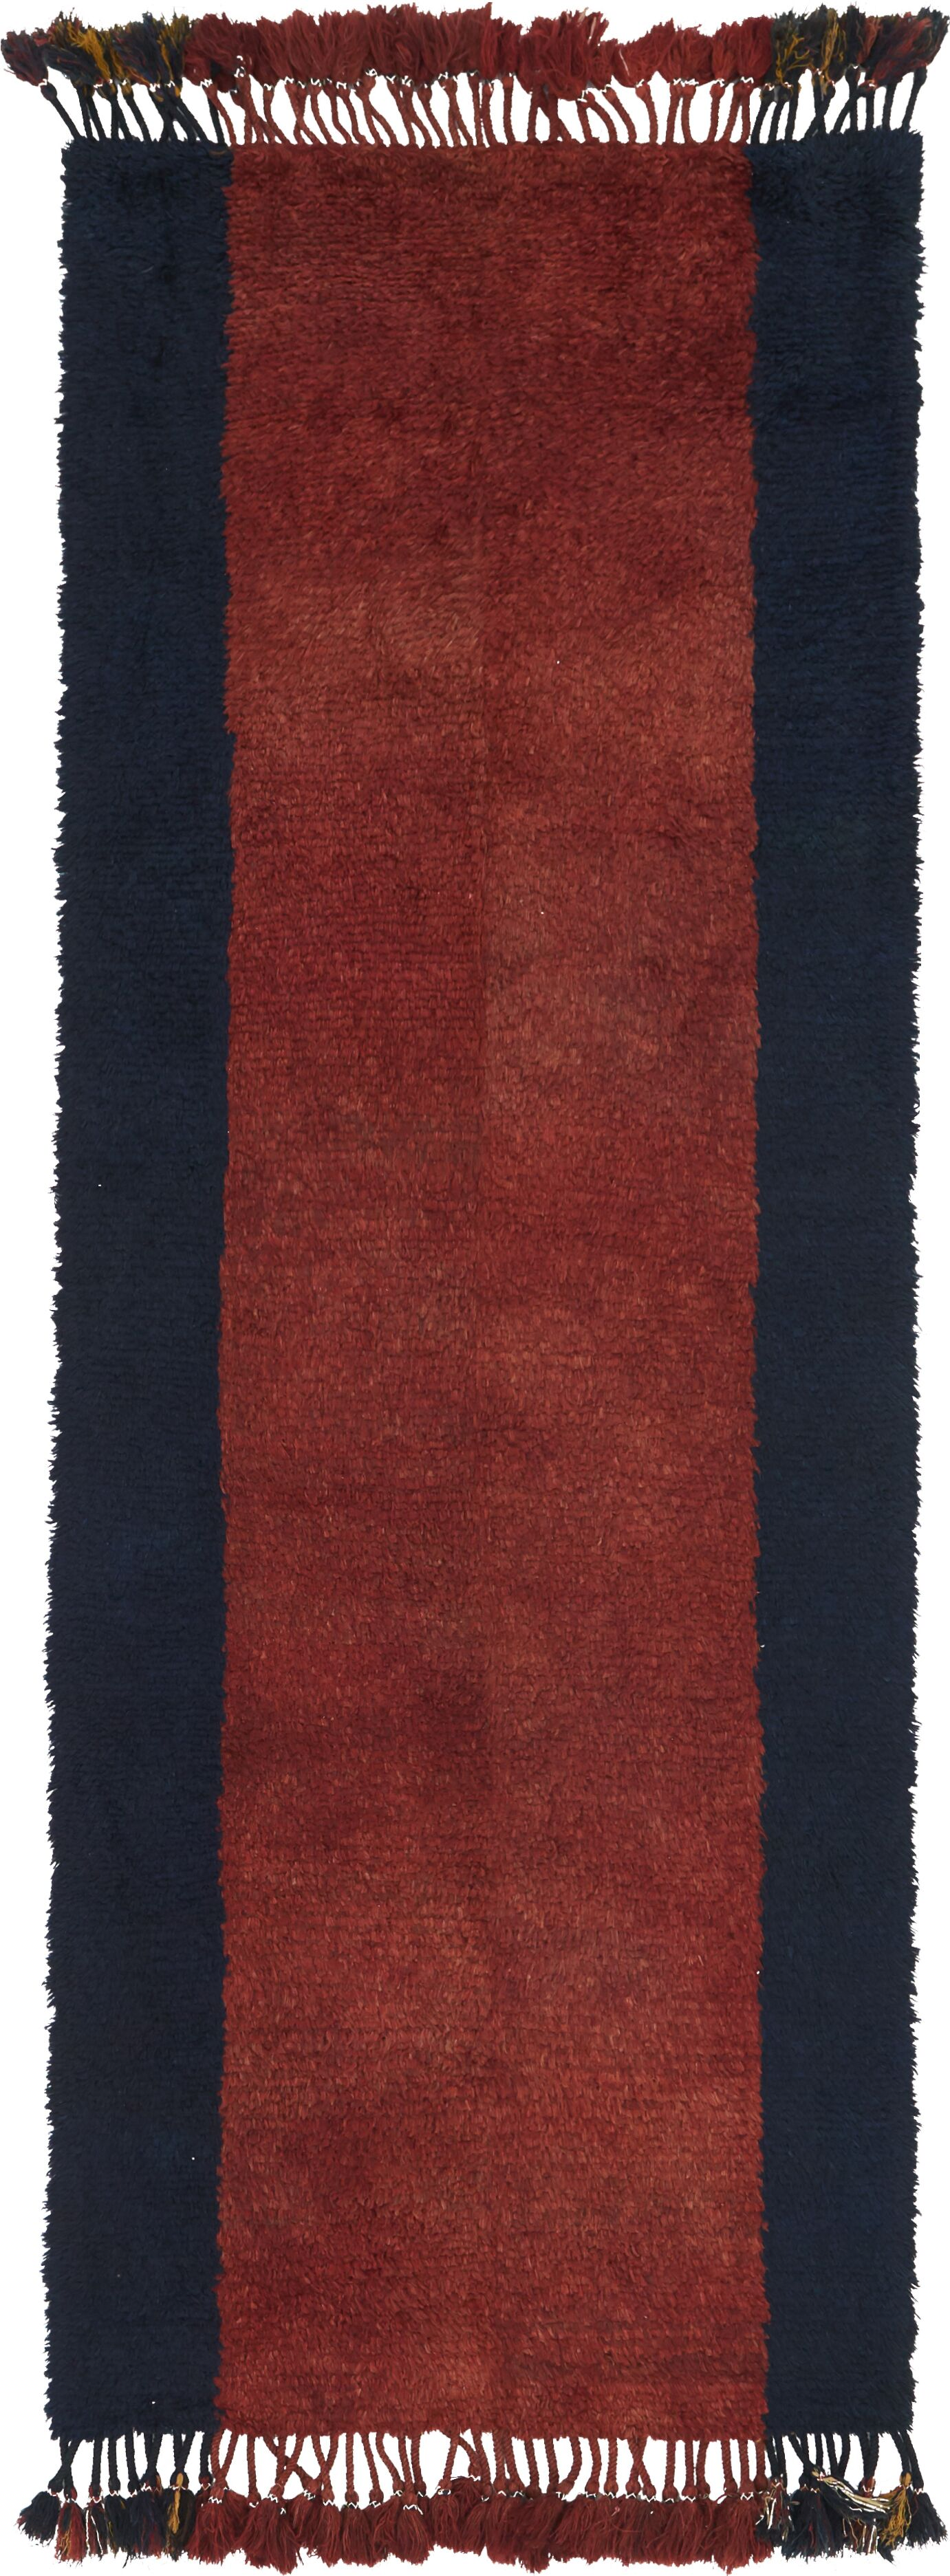 One-of-a-Kind Nuneaton Hand-Knotted Wool Red/Black Area Rug